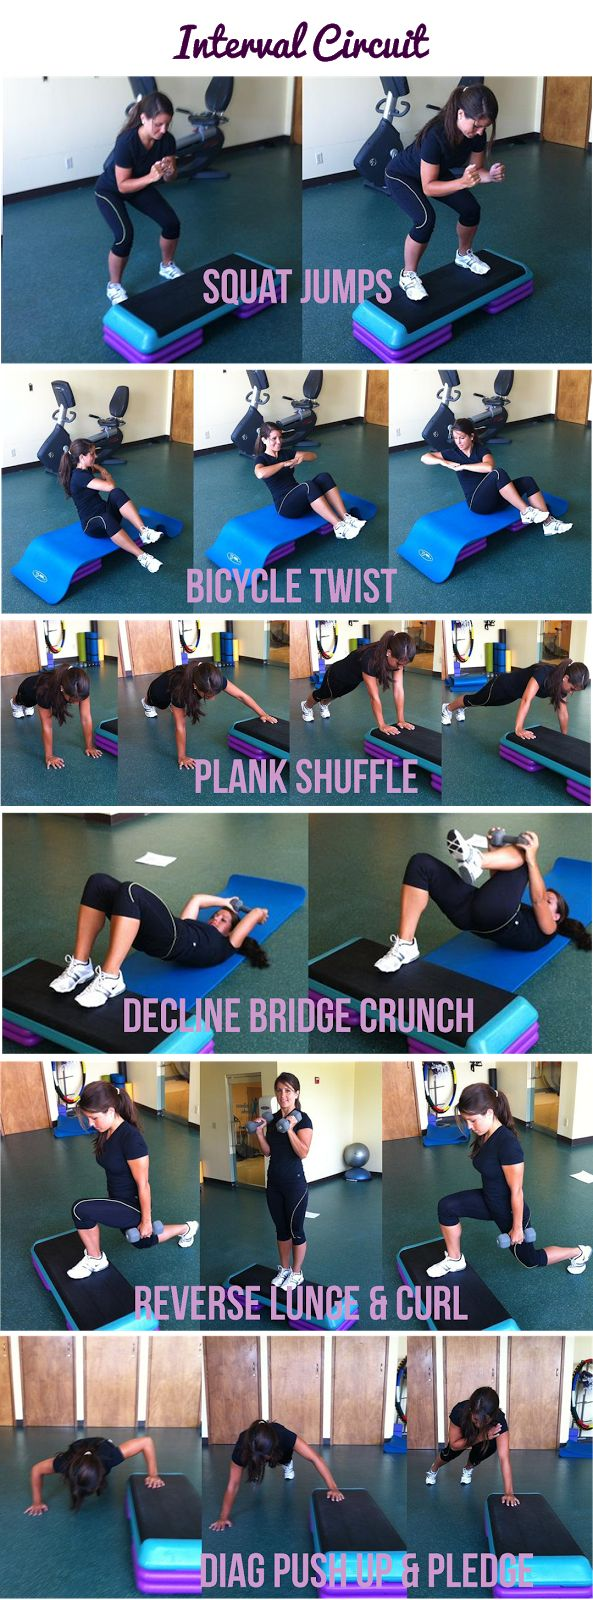 quick interval circuit workout using a step and 2 weights. gymra.com/free-trial. Start your free month now!!! Cancel anytime. #fitness #workout #health #exercise